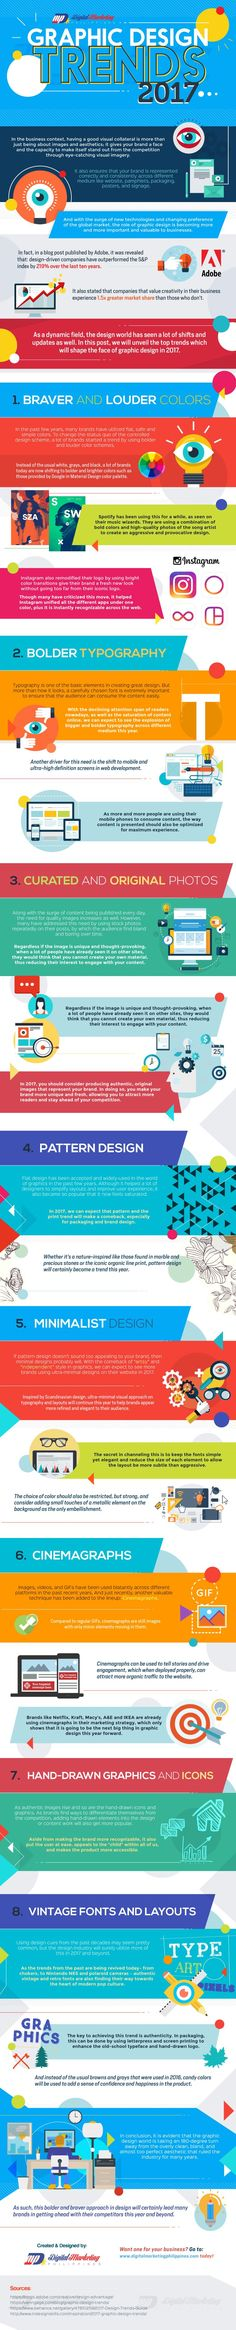 8 #GraphicDesign Trends to Add Some Oomph to Your 2017 #Marketing Campaign #Infographic #Design #Startup #Business